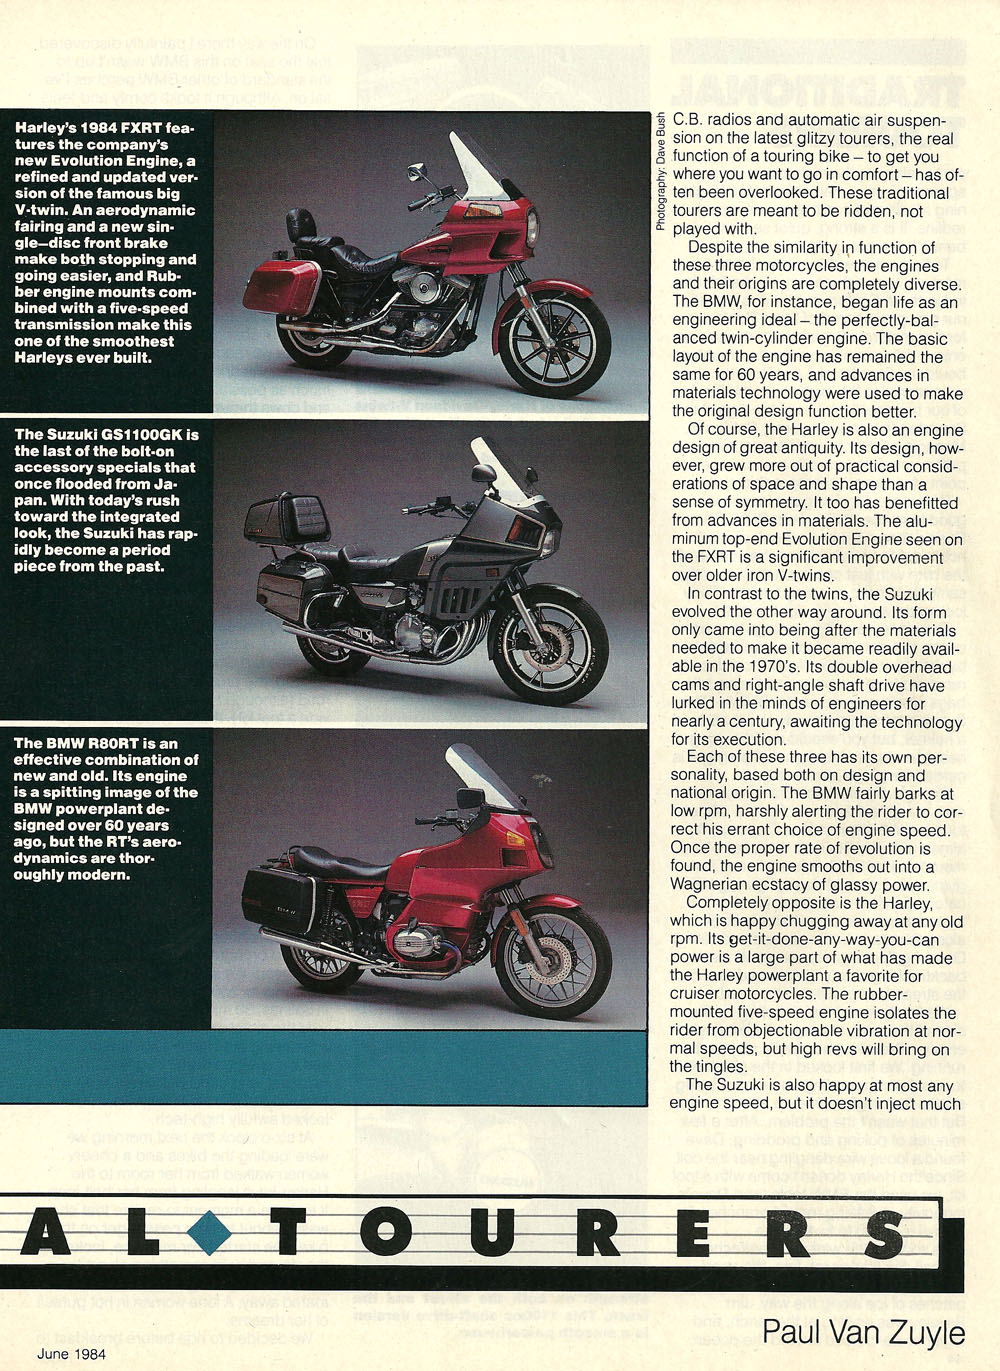 1984 bmw r80rt vs harley fxrt vs suzuki gs1100 road test 02.jpg